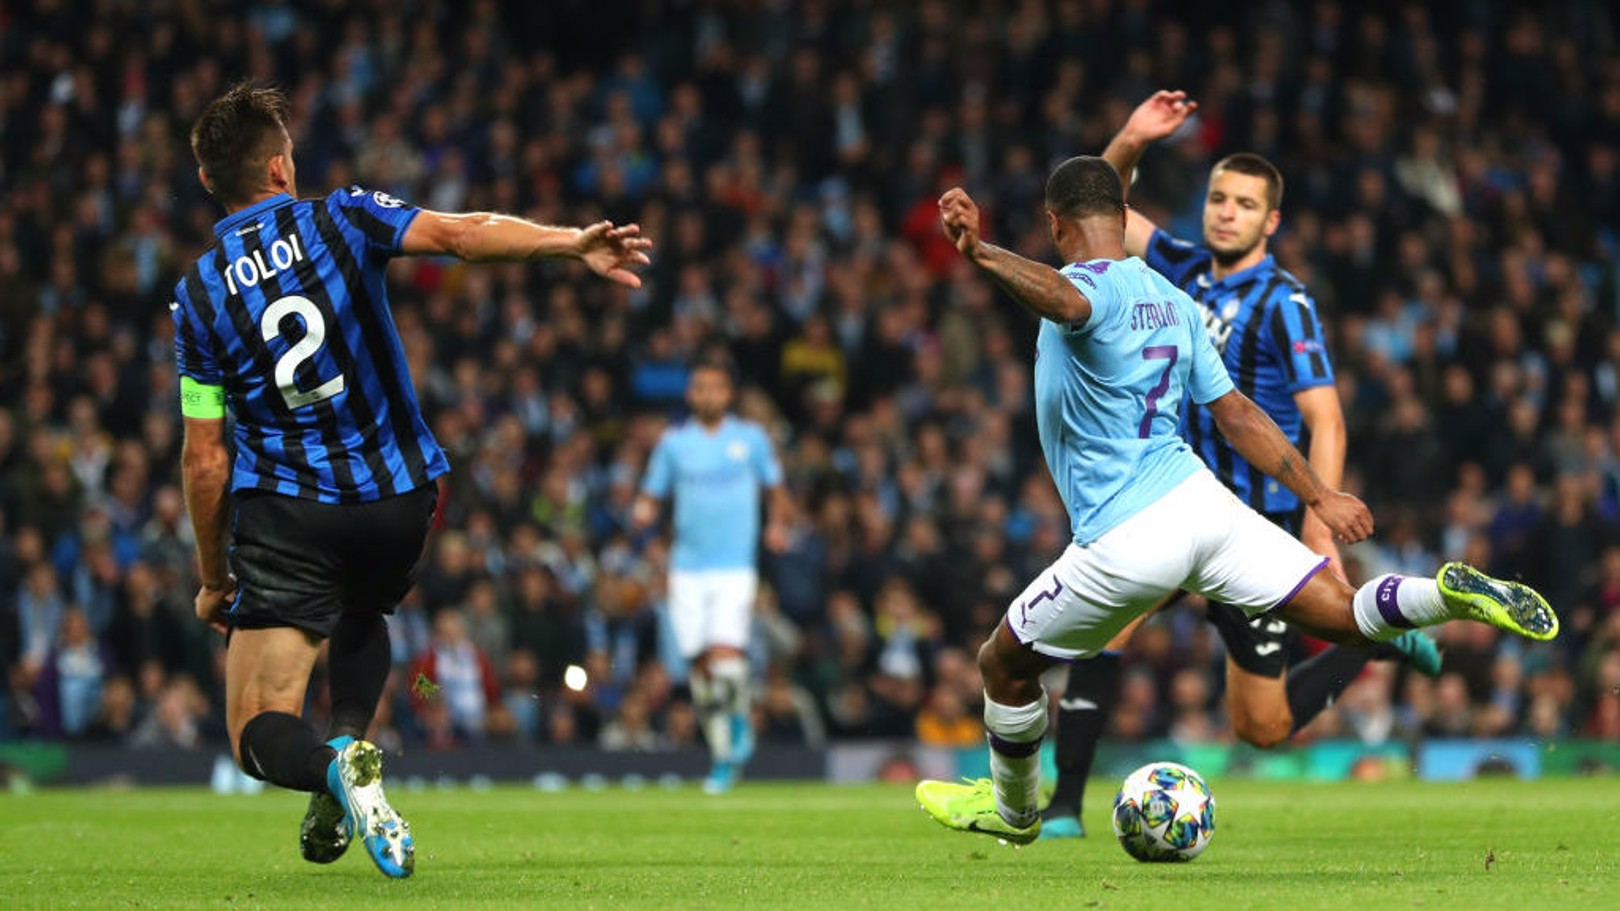 NOMINEES: Seven City players have been shortlisted for a place in the UEFA Team of the Year